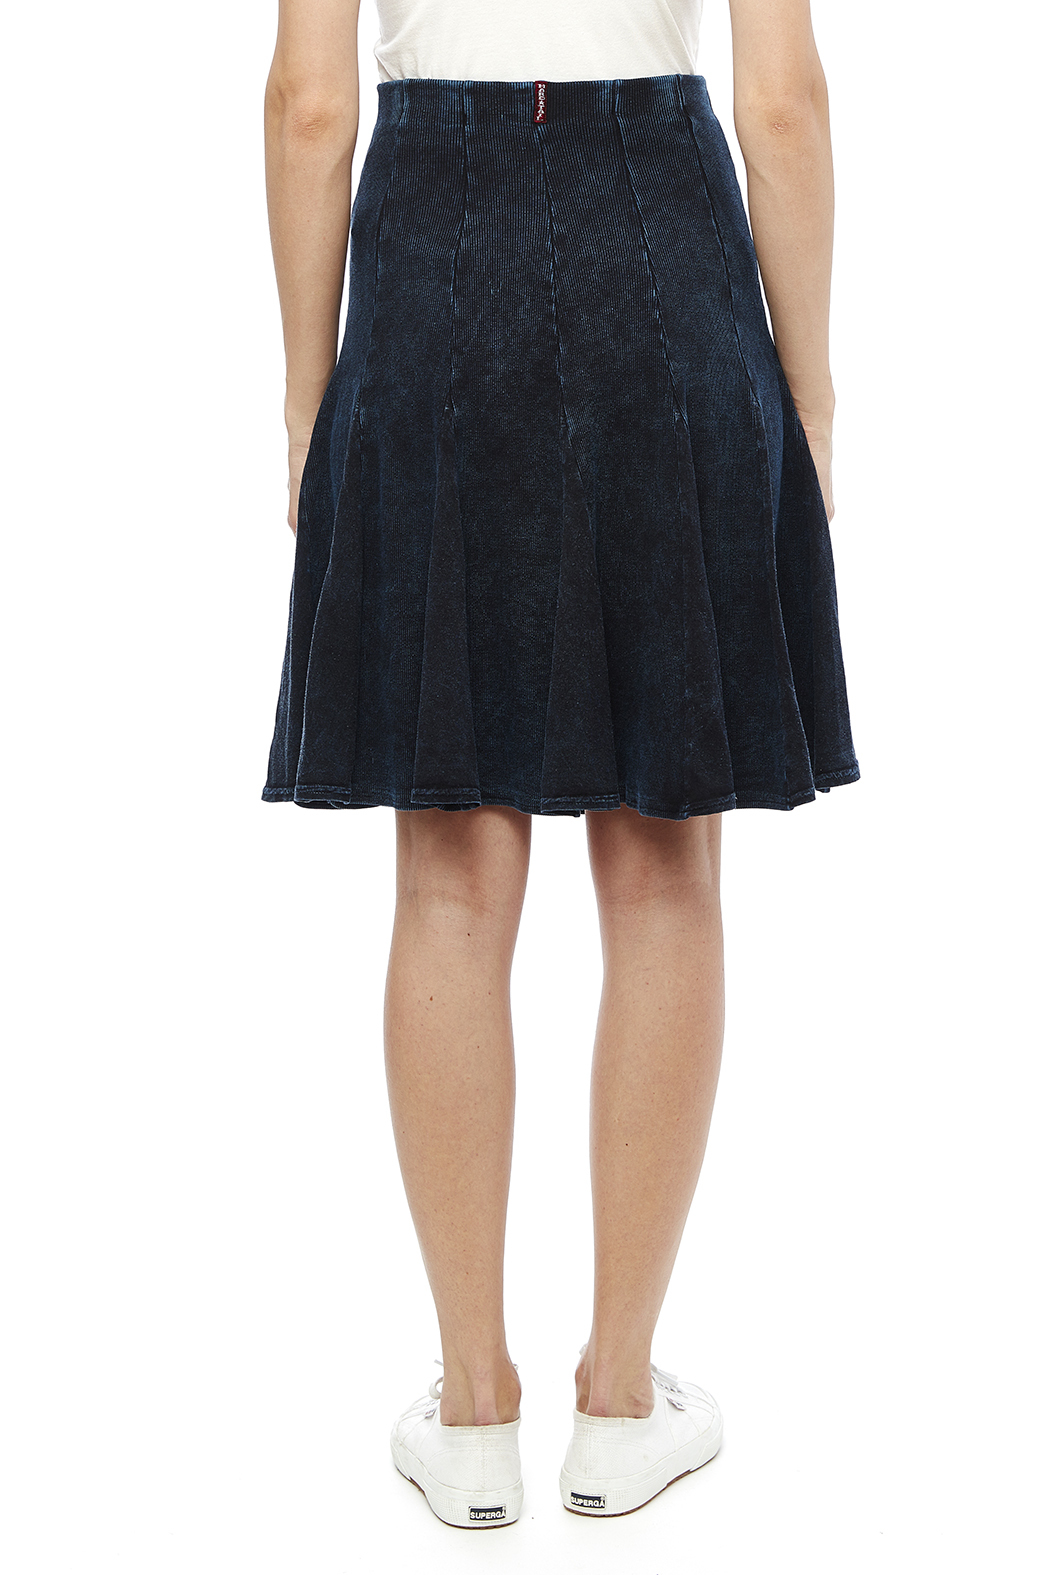 Hard Tail Fit-N-Flare Skirt - Back Cropped Image